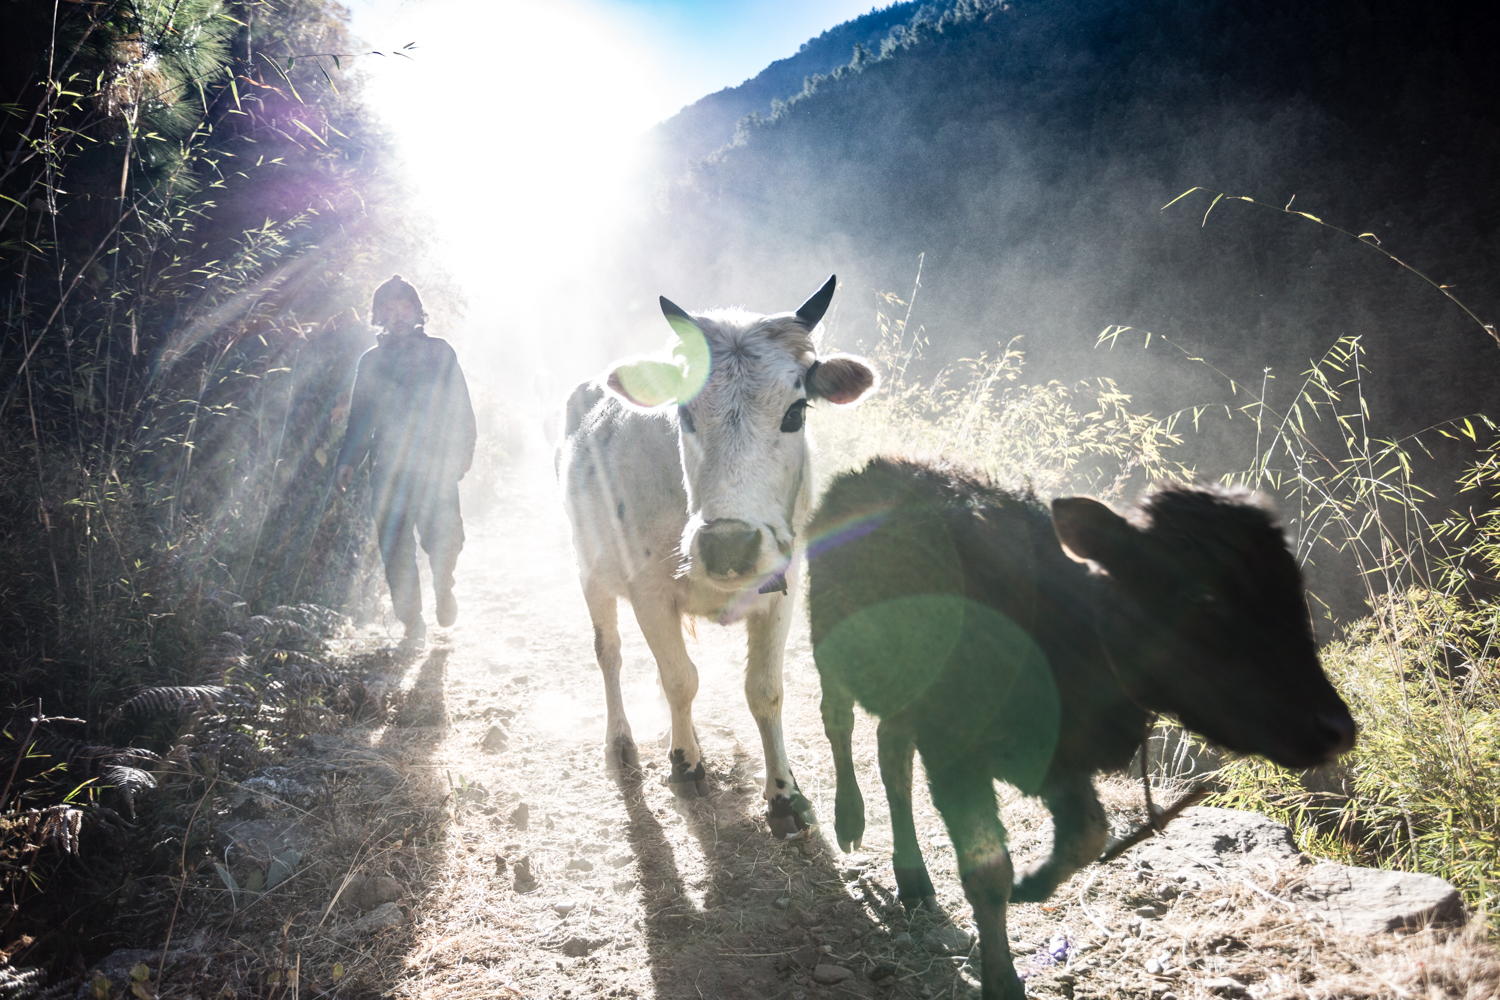 The narrow mountain paths must be shared with locals going about their business of transporting goods and herding livestock.